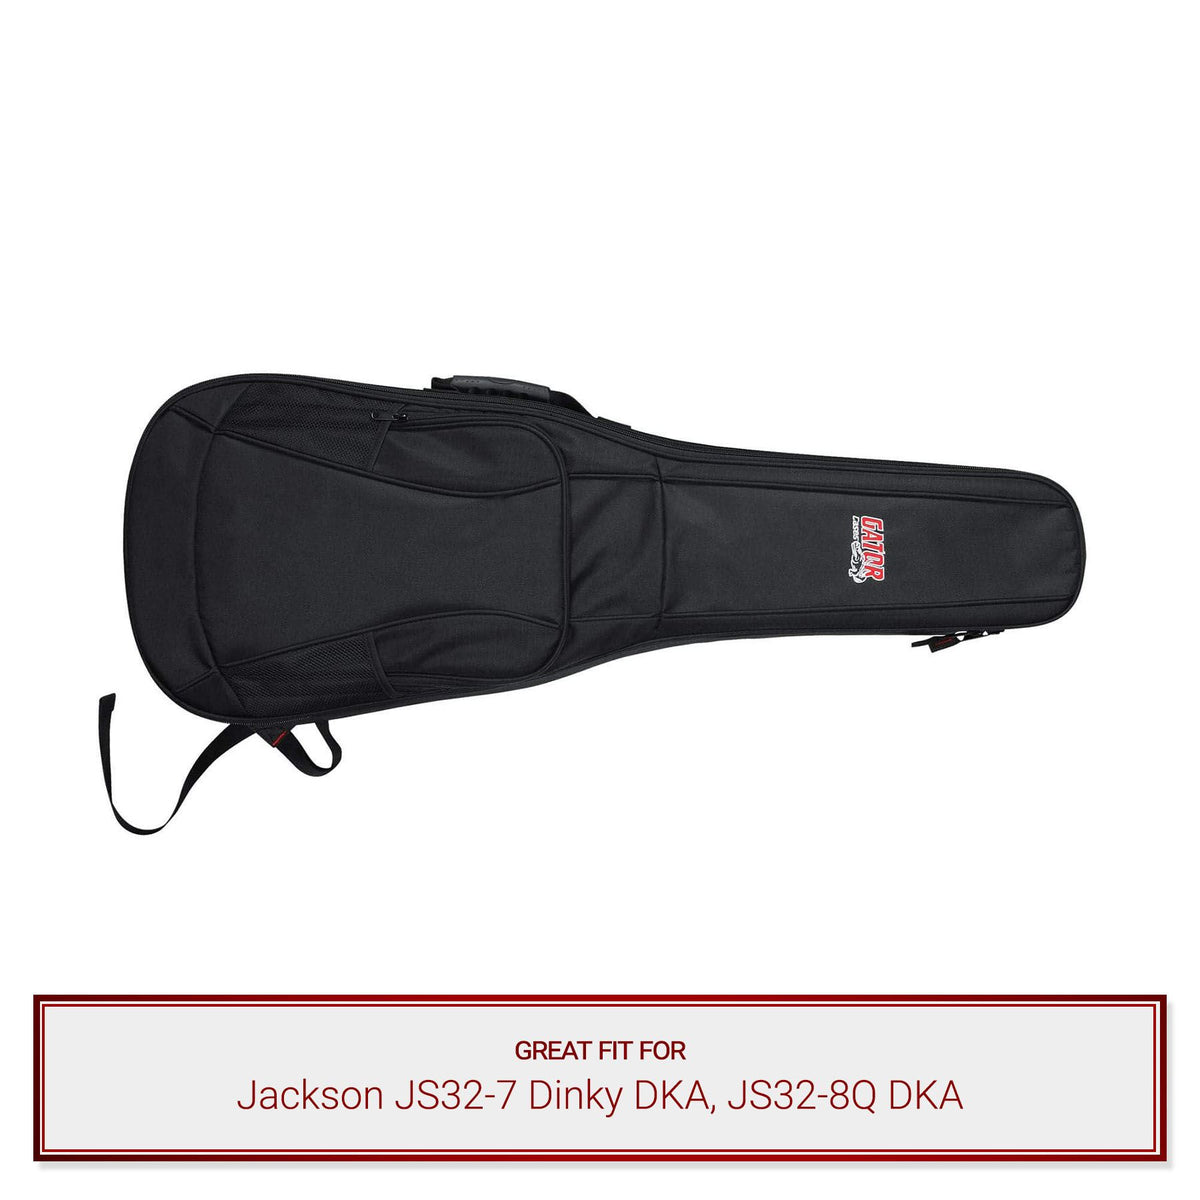 Gator Electric Guitar Backpack Gig Bag for Jackson JS32-7 Dinky DKA, JS32-8Q DKA Guitars